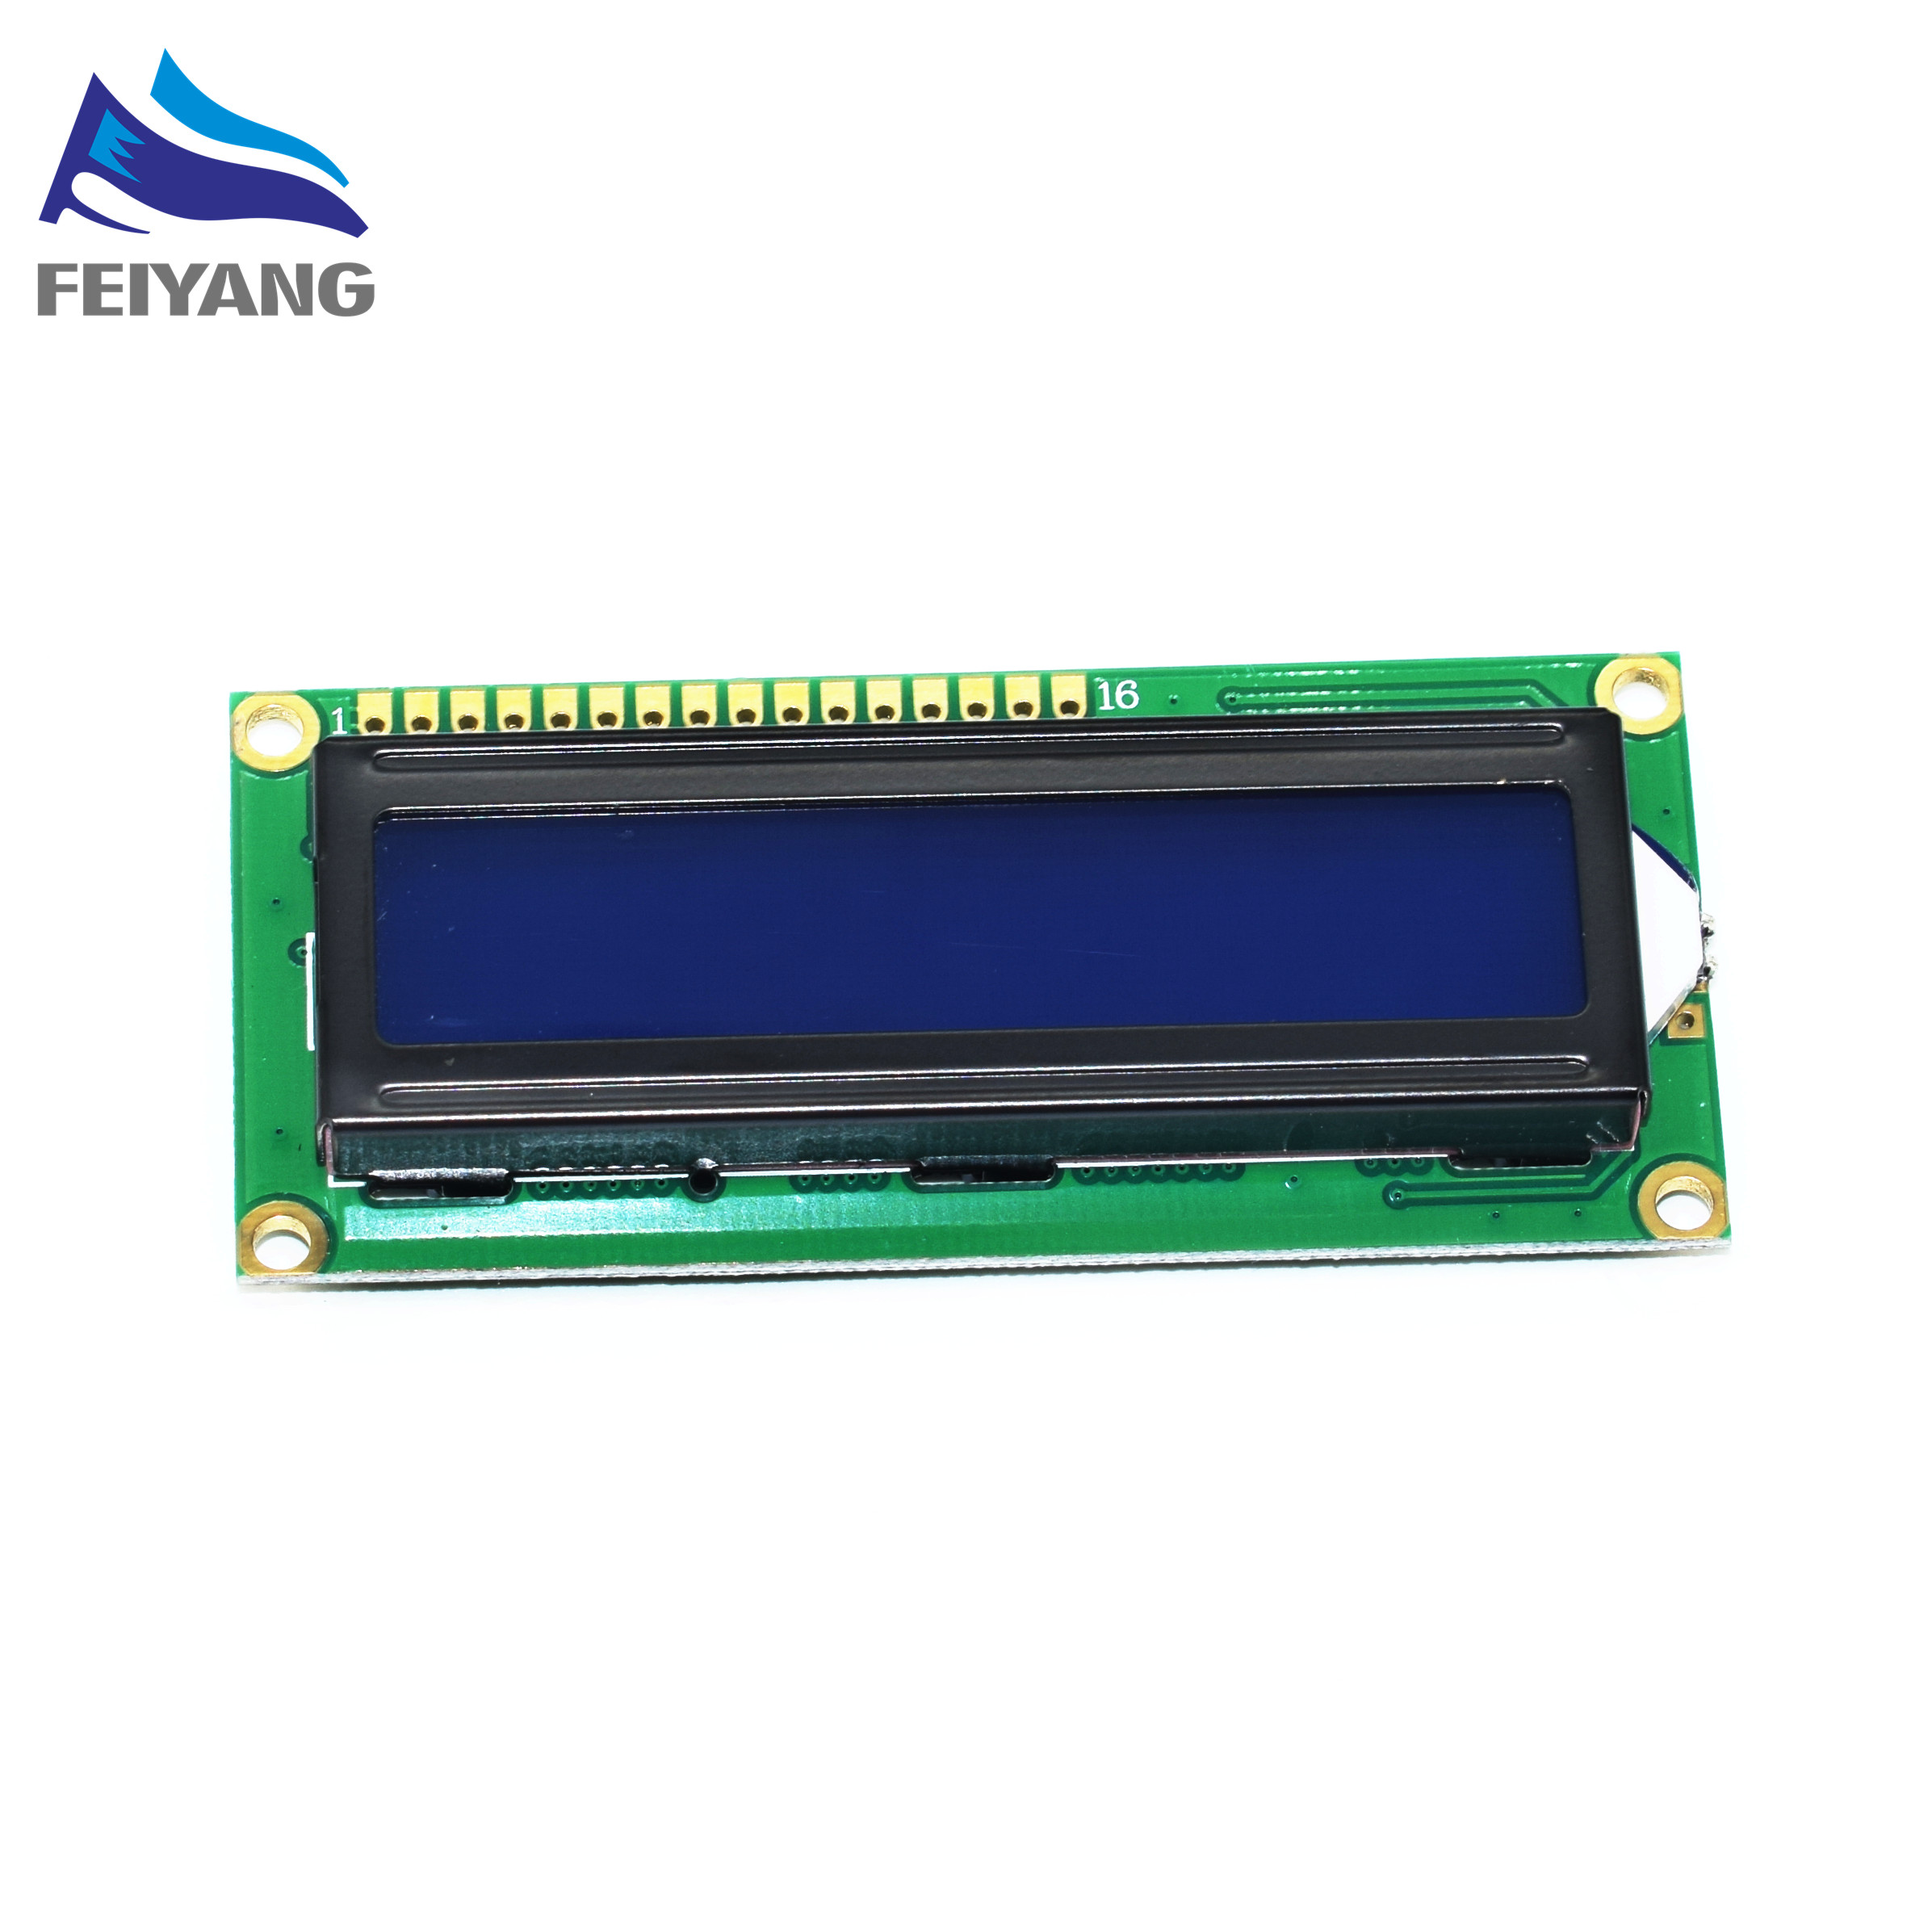 95V Blue LCD 1602A Display LCD Screen Screen Modules Displays Optoelectronic